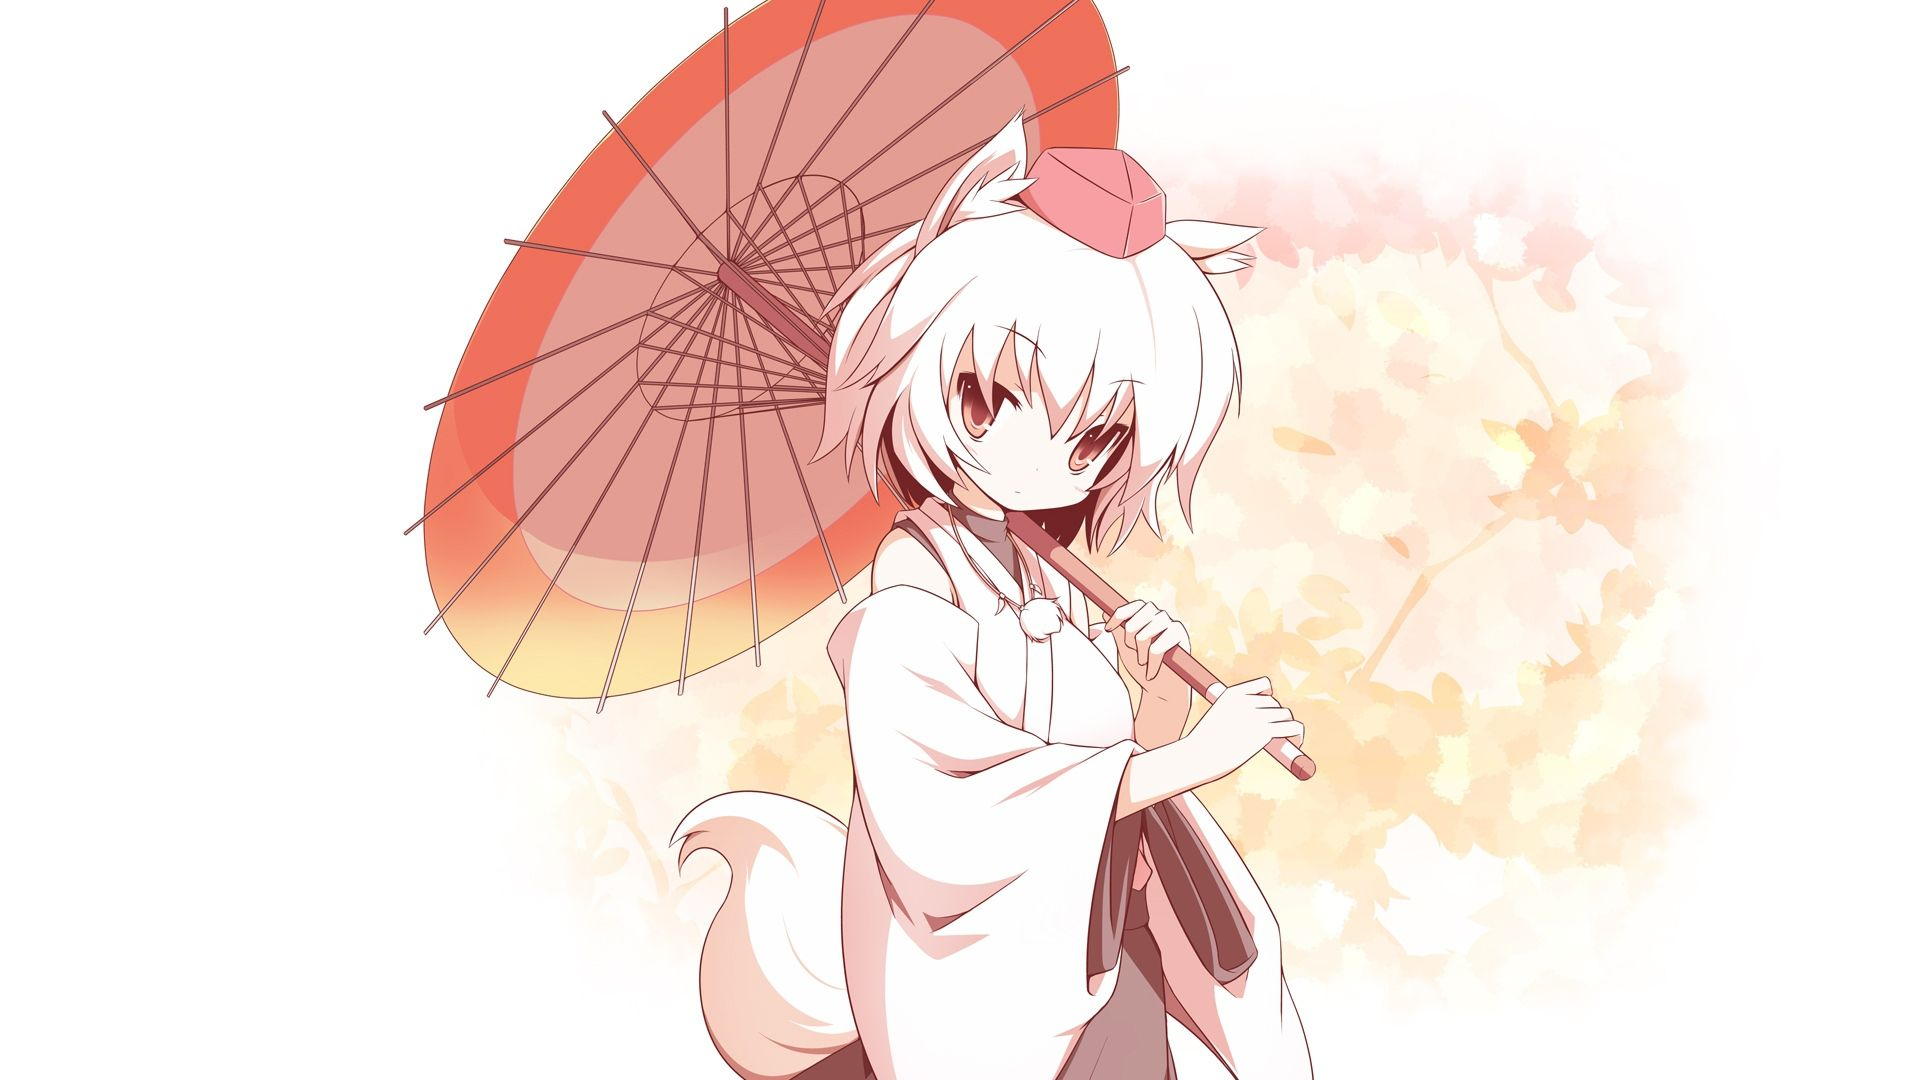 download wallpaper 1920x1080 girl a creature ears tail umbrella lights full hd 1080p hd background 画 東方プロジェクト アニメ